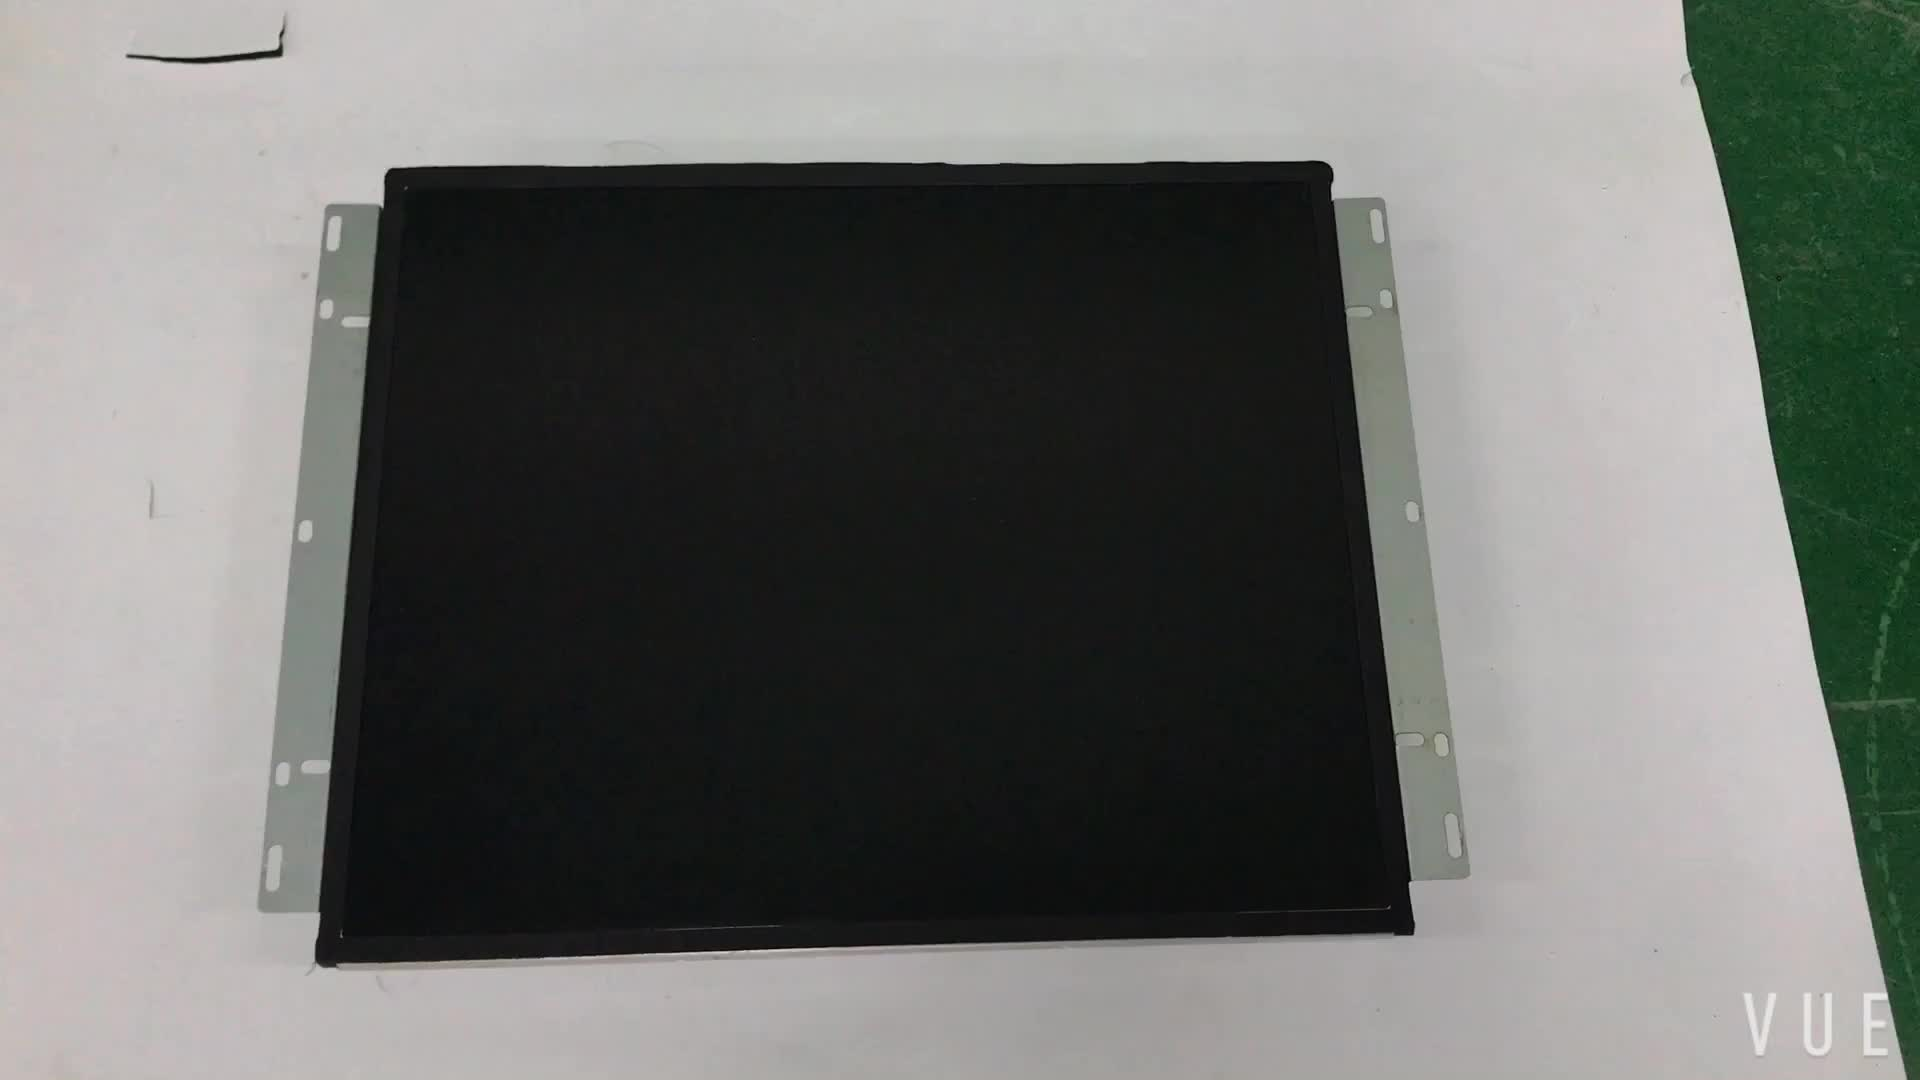 Hot Selling Arcade Monitor/Scherm Lcd 15 Inch 17 Inch 19 Inch Voor Sales